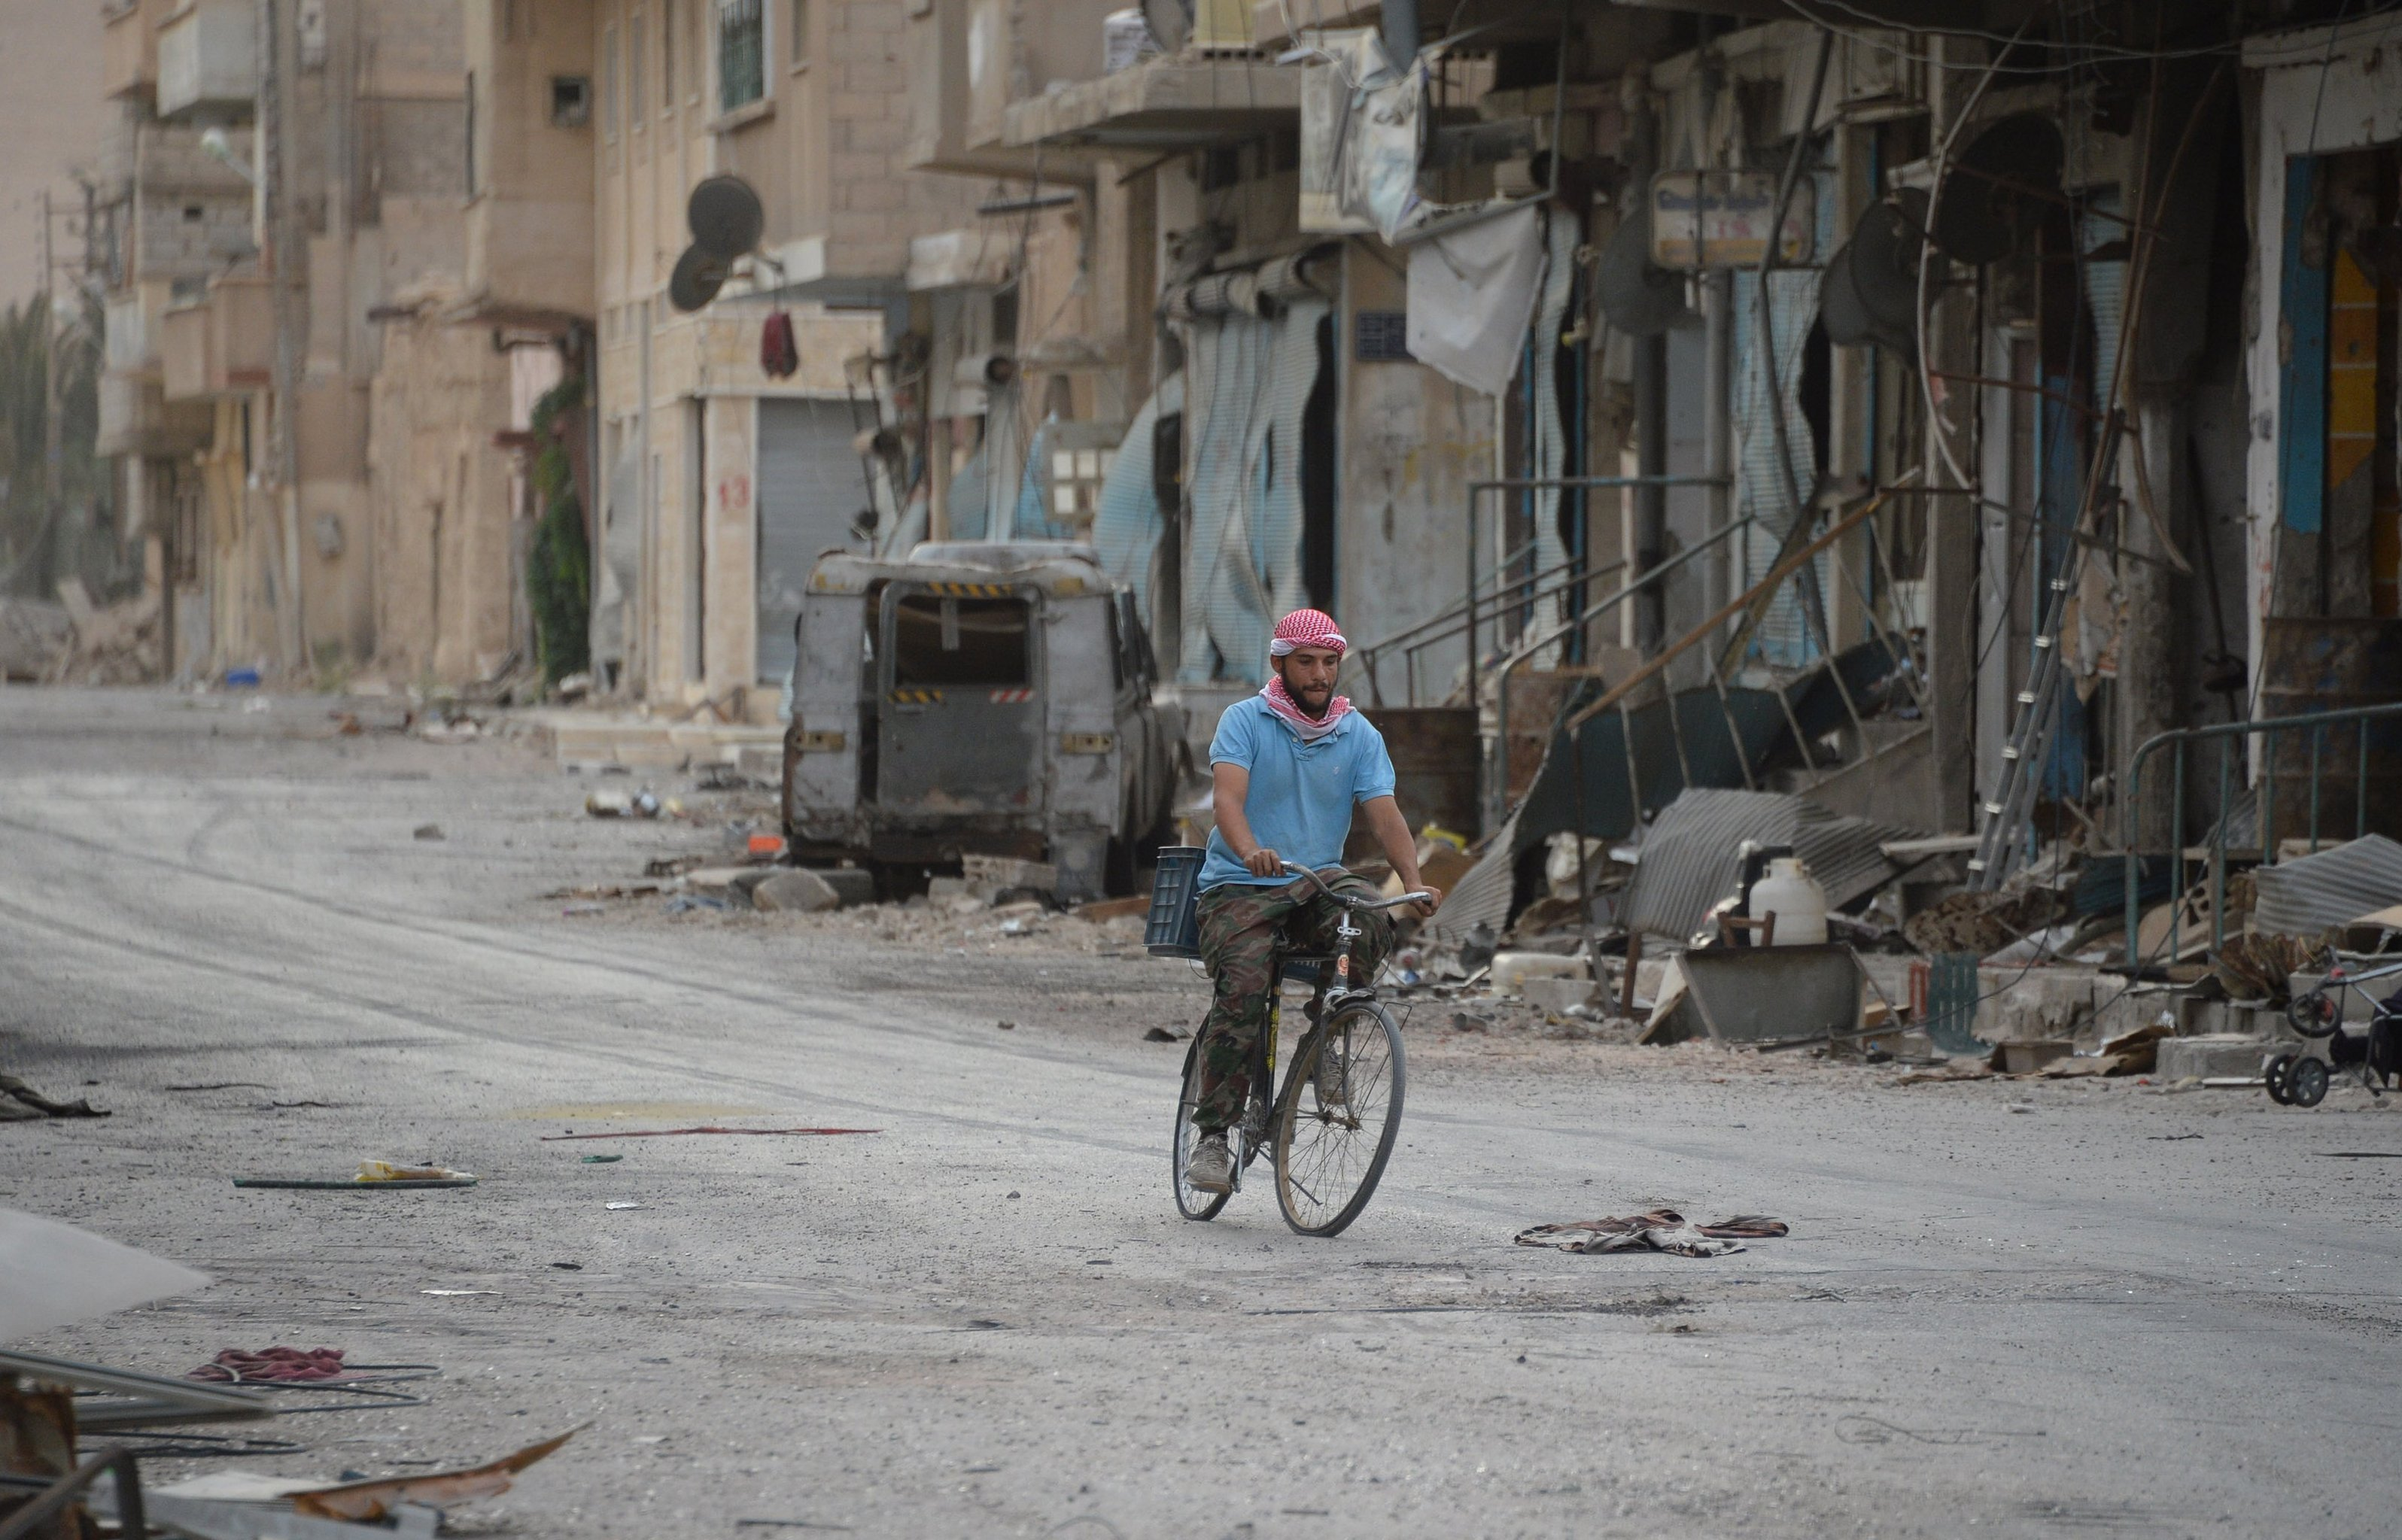 A man rides a bicycle in Palmyra.